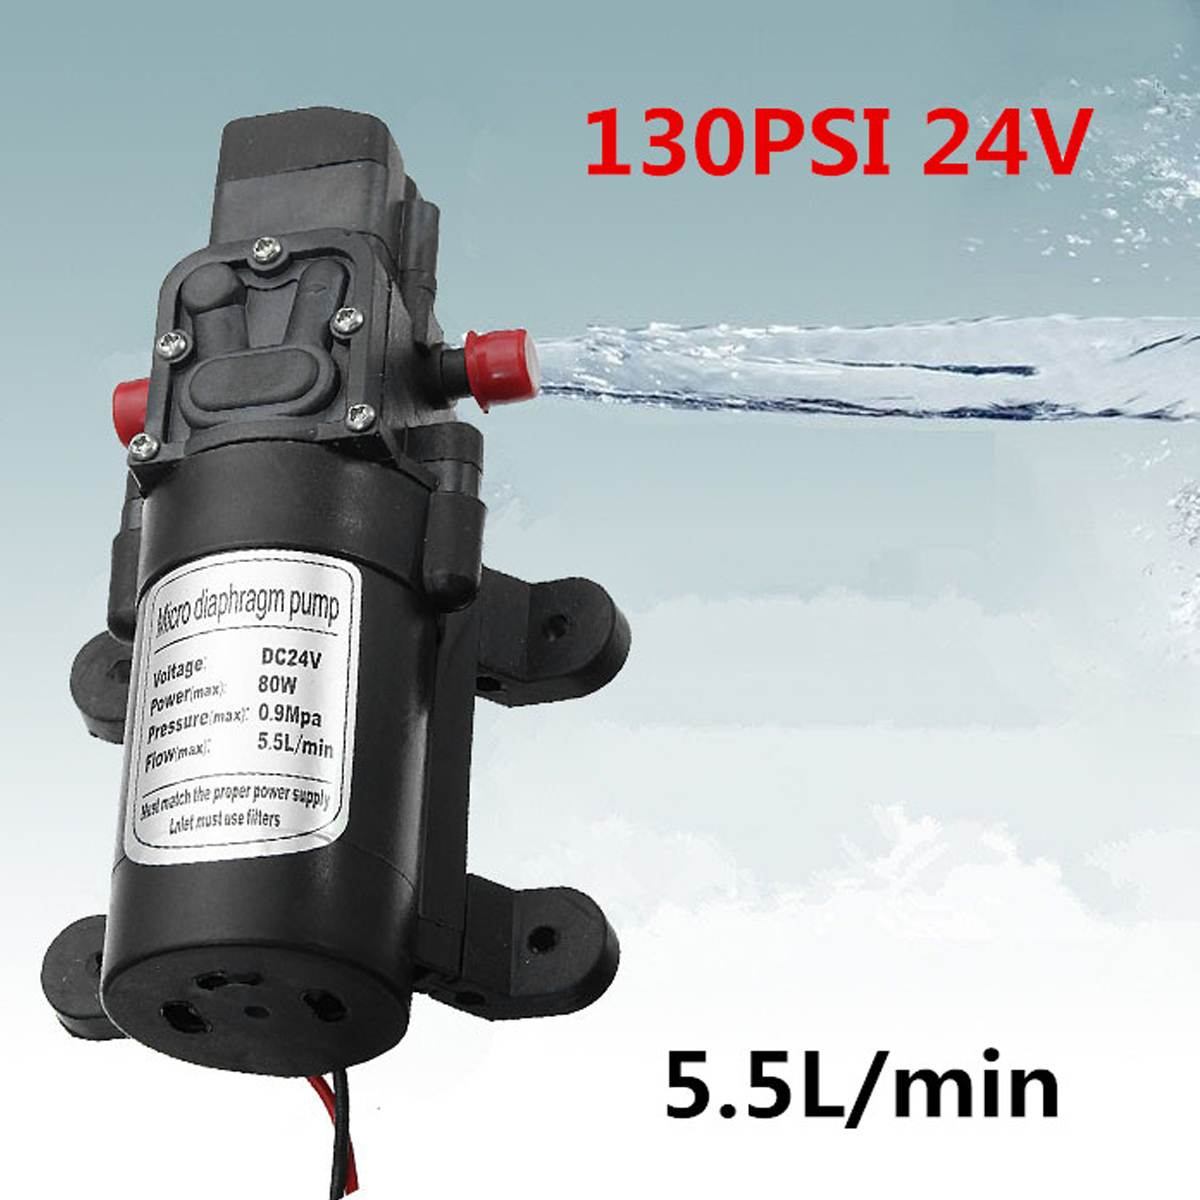 80W DC 24V 130PSI Water High Pressure Diaphragm Self Priming Pump For Garden Sprinkler ShowerCaravan Boat80W DC 24V 130PSI Water High Pressure Diaphragm Self Priming Pump For Garden Sprinkler ShowerCaravan Boat